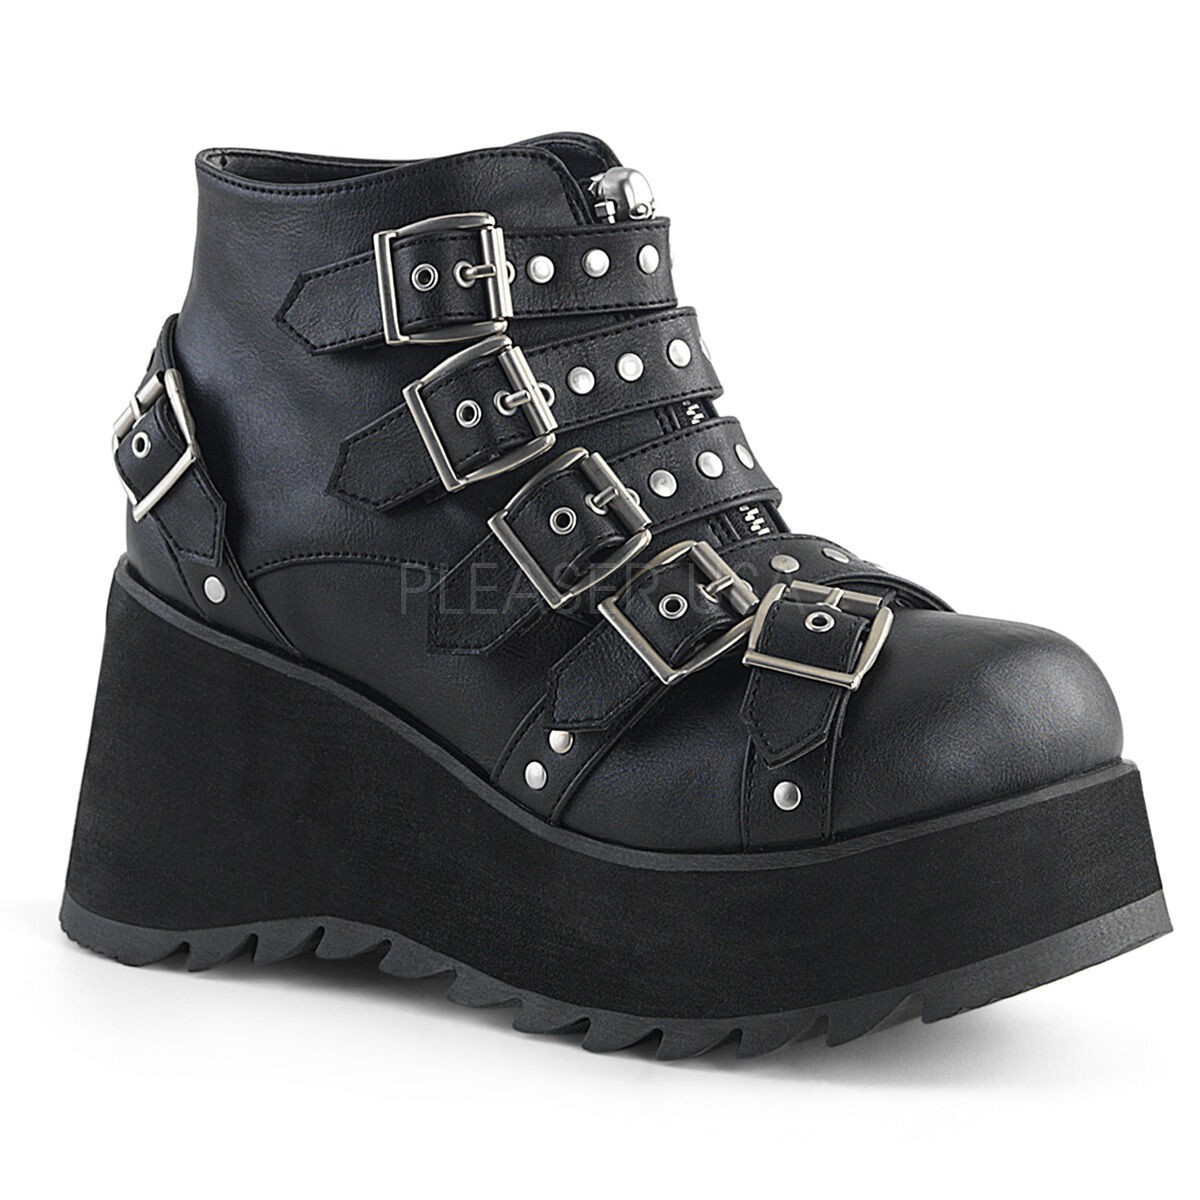 SCENE-30 BIKER COMBAT RAVE MULTI STUDDED STRAPS LIGHTWEIGHT WEDGE PLATFORM BOOT